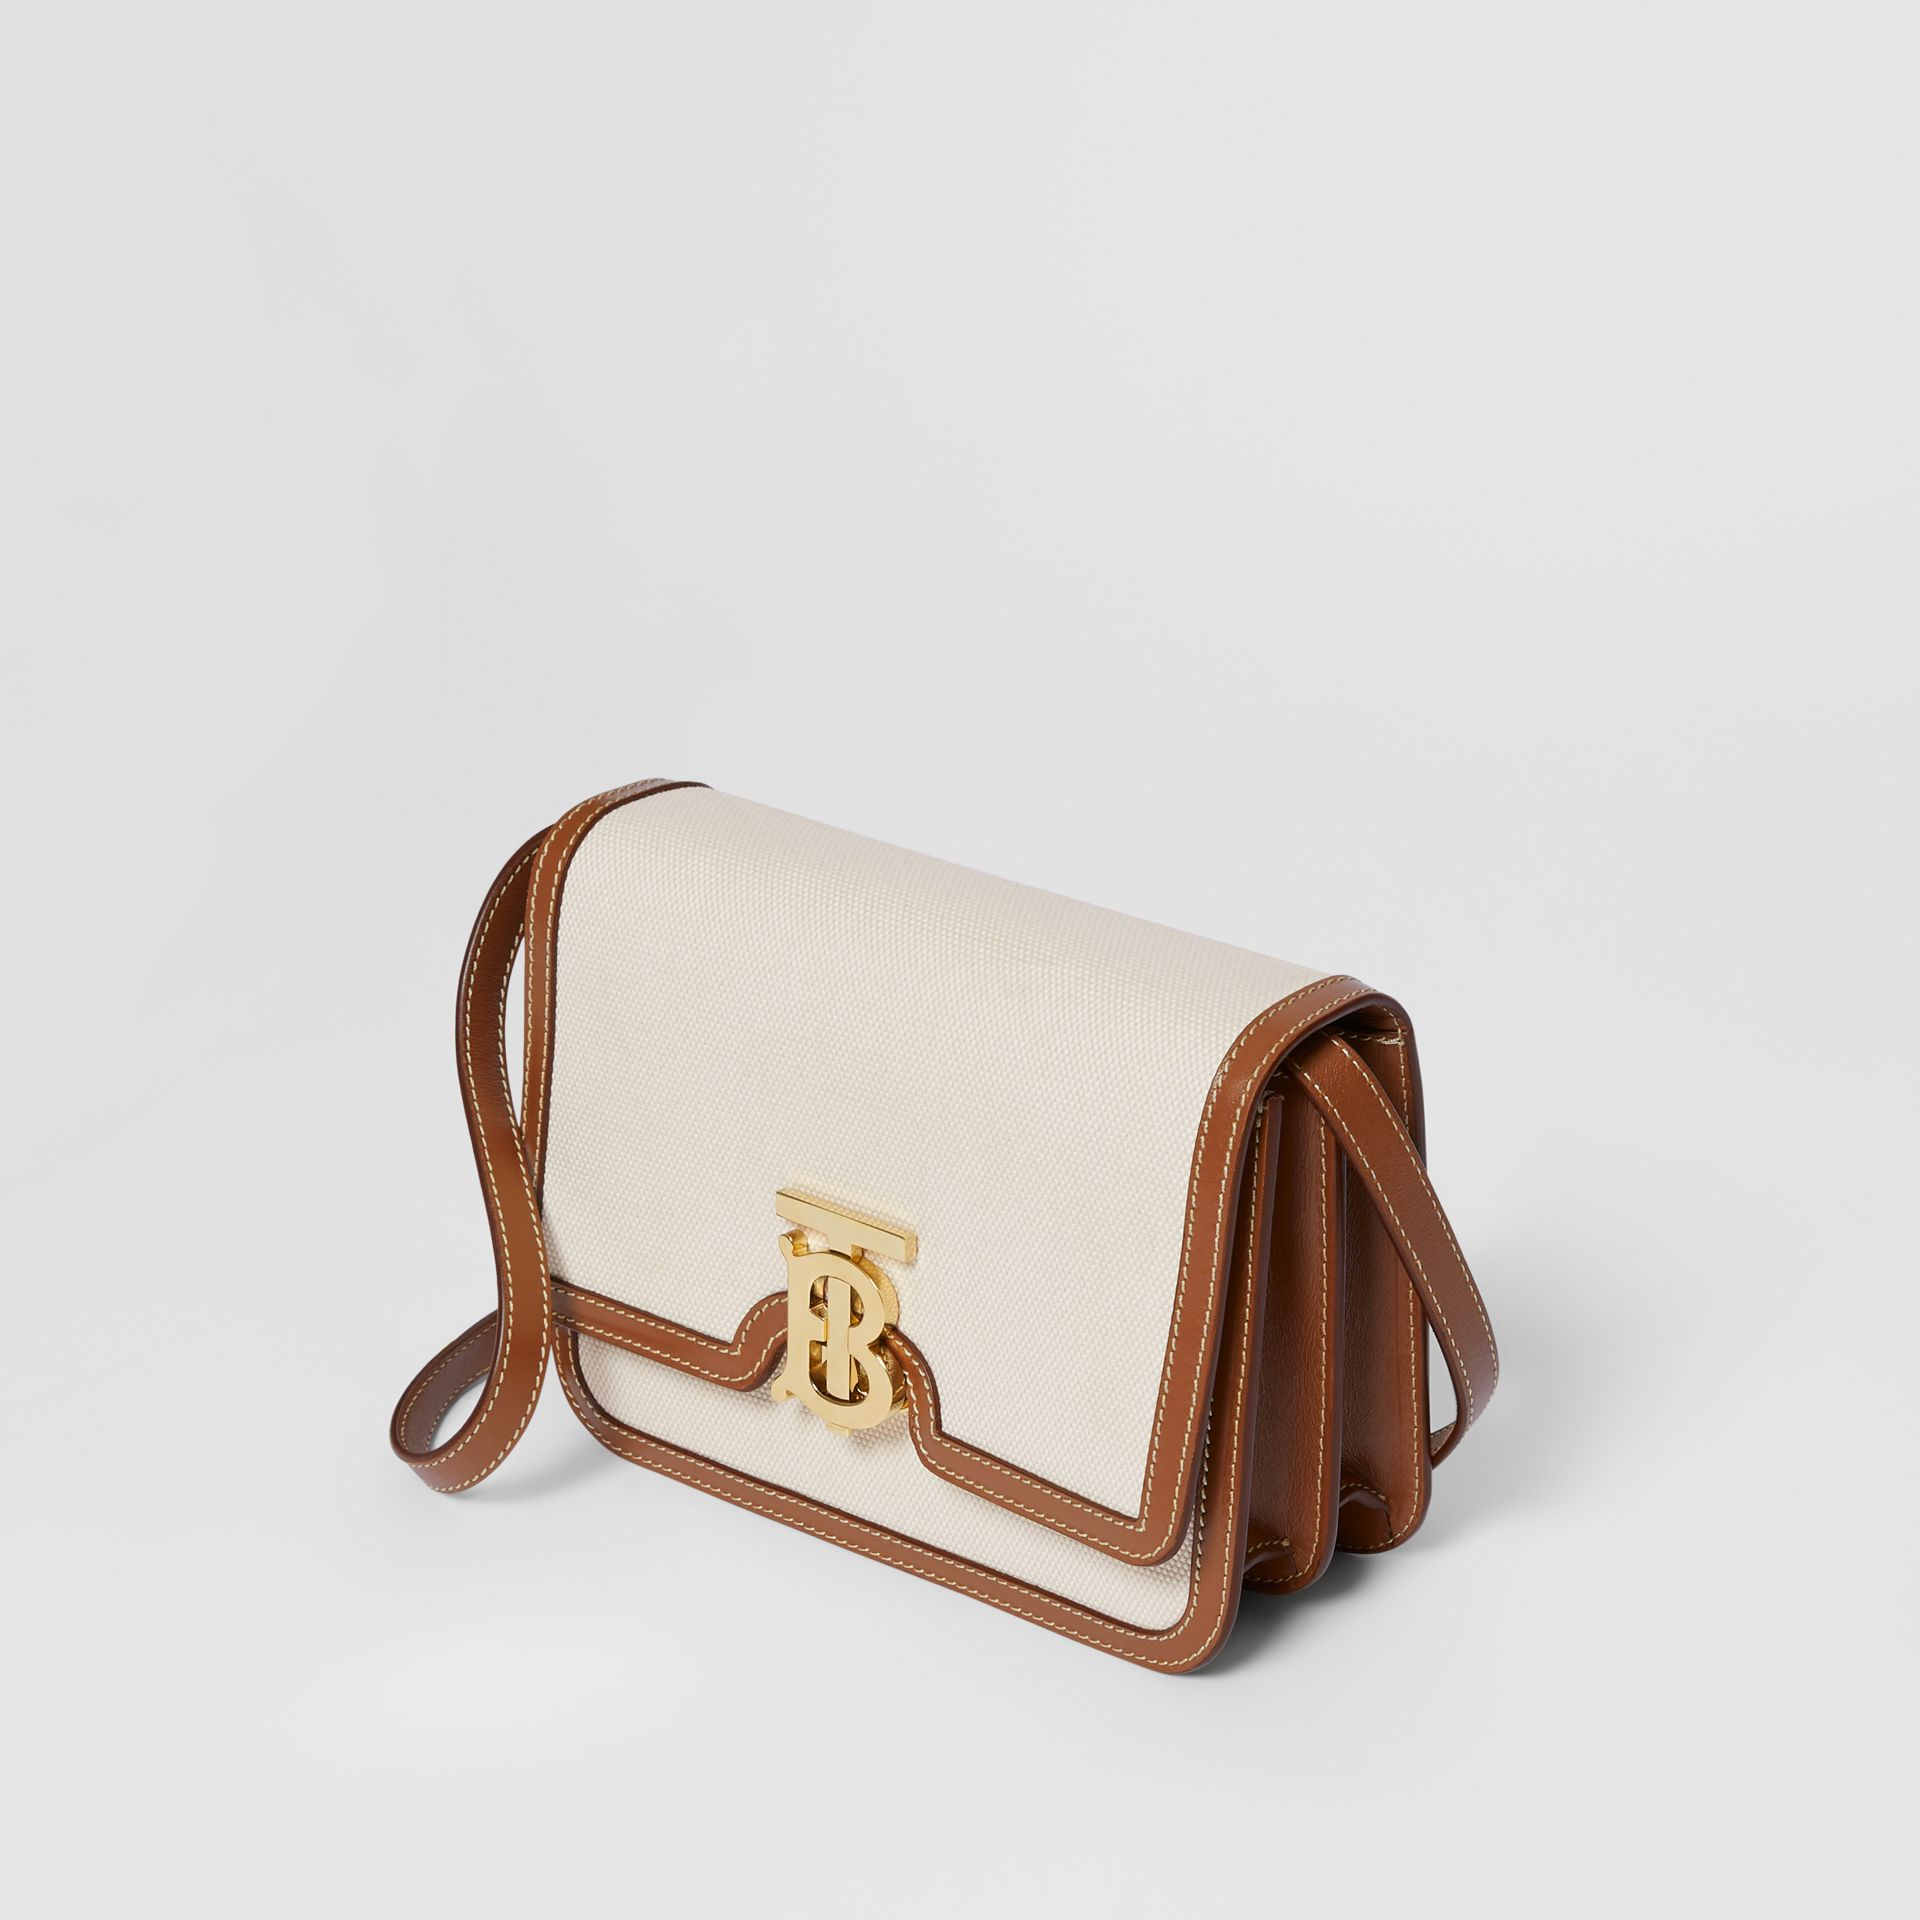 Small Two-tone Canvas and Leather TB Bag in Malt Brown - Women | Burberry - gallery image 3